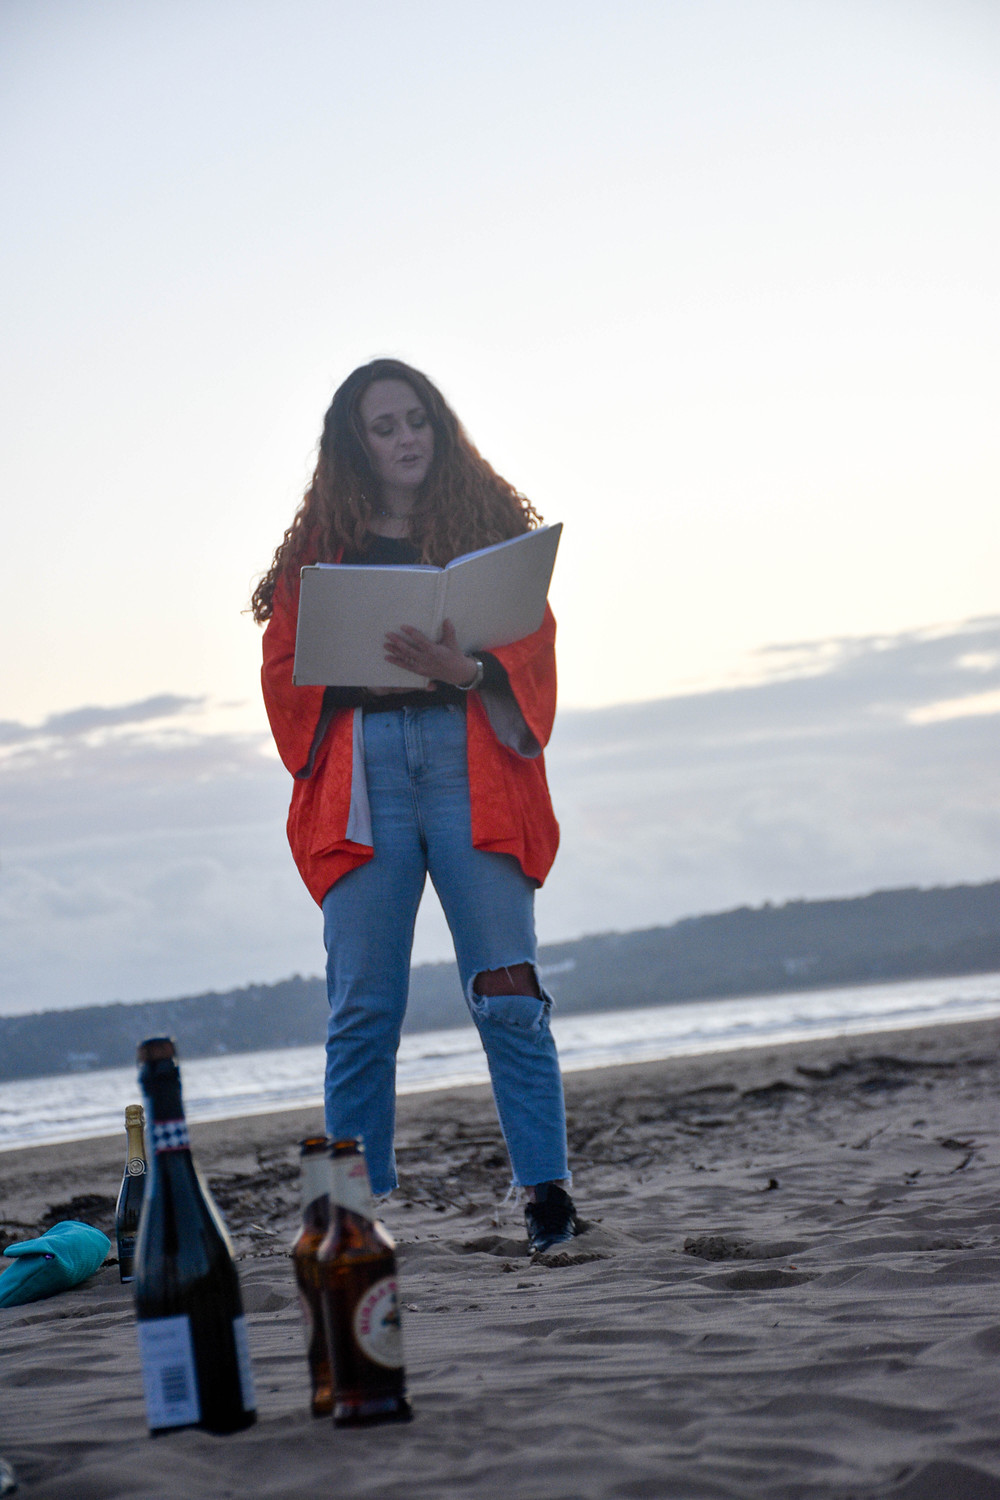 A photo of Sian Jackson delivering the Celebration of Friendship ceremony.. She is standing on Swansea Bay, you can see the sea in the background and there are bottles of beer and wine in the foreground.